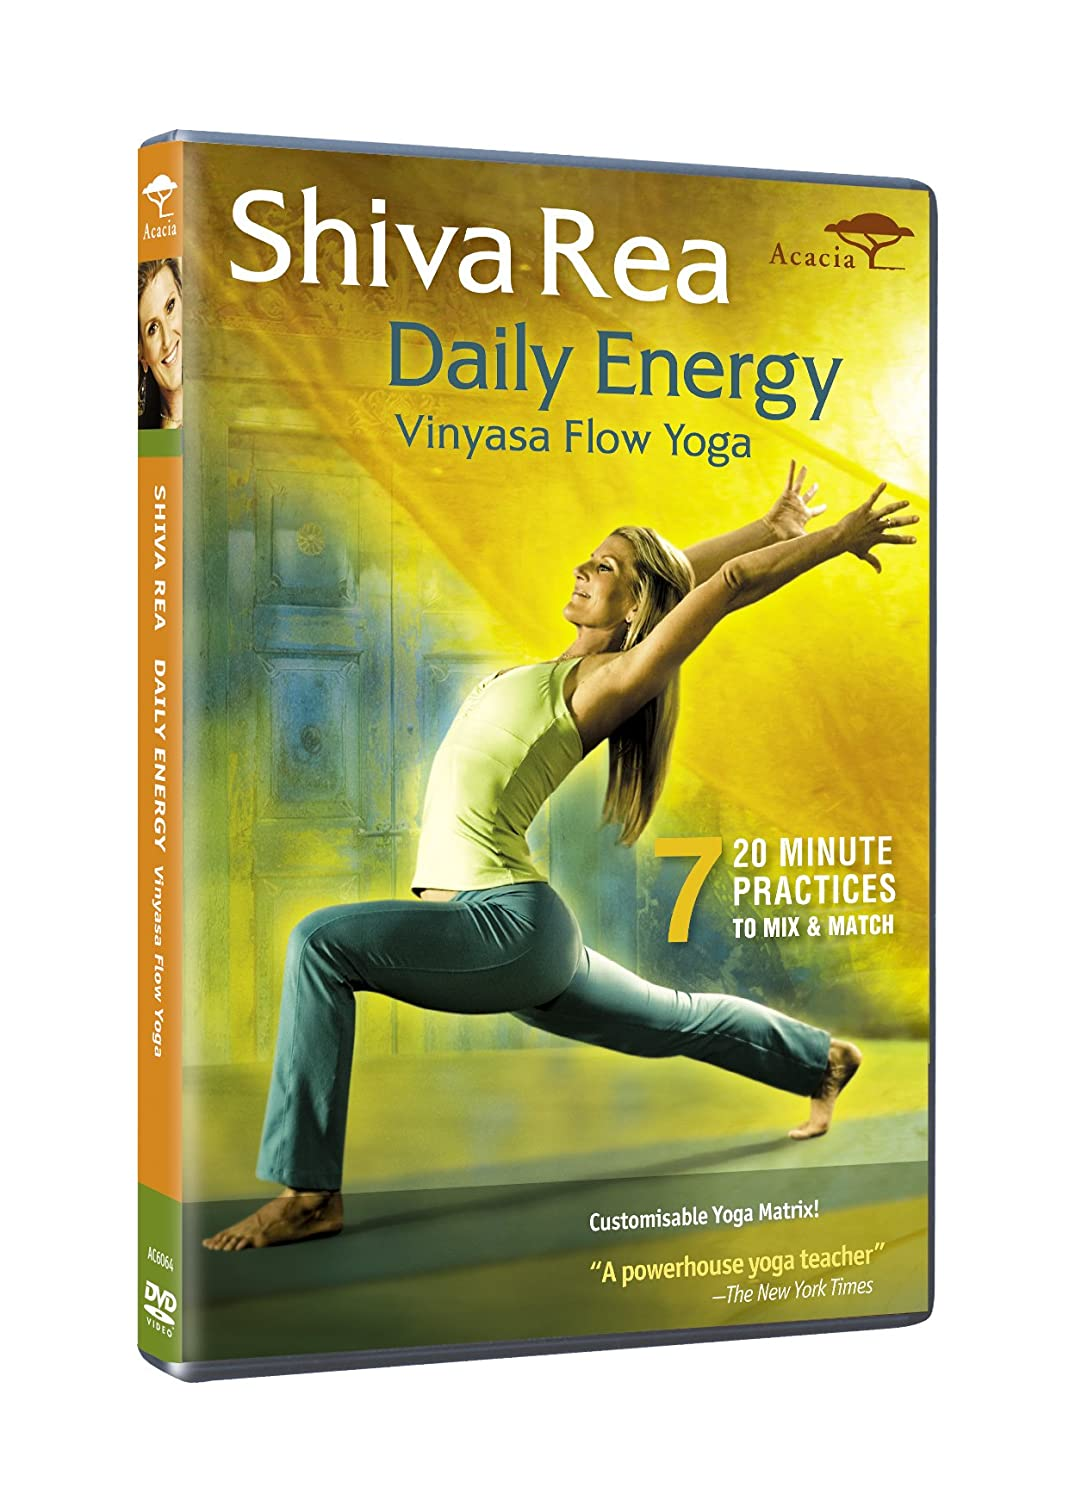 shiva rea yoga shakti review